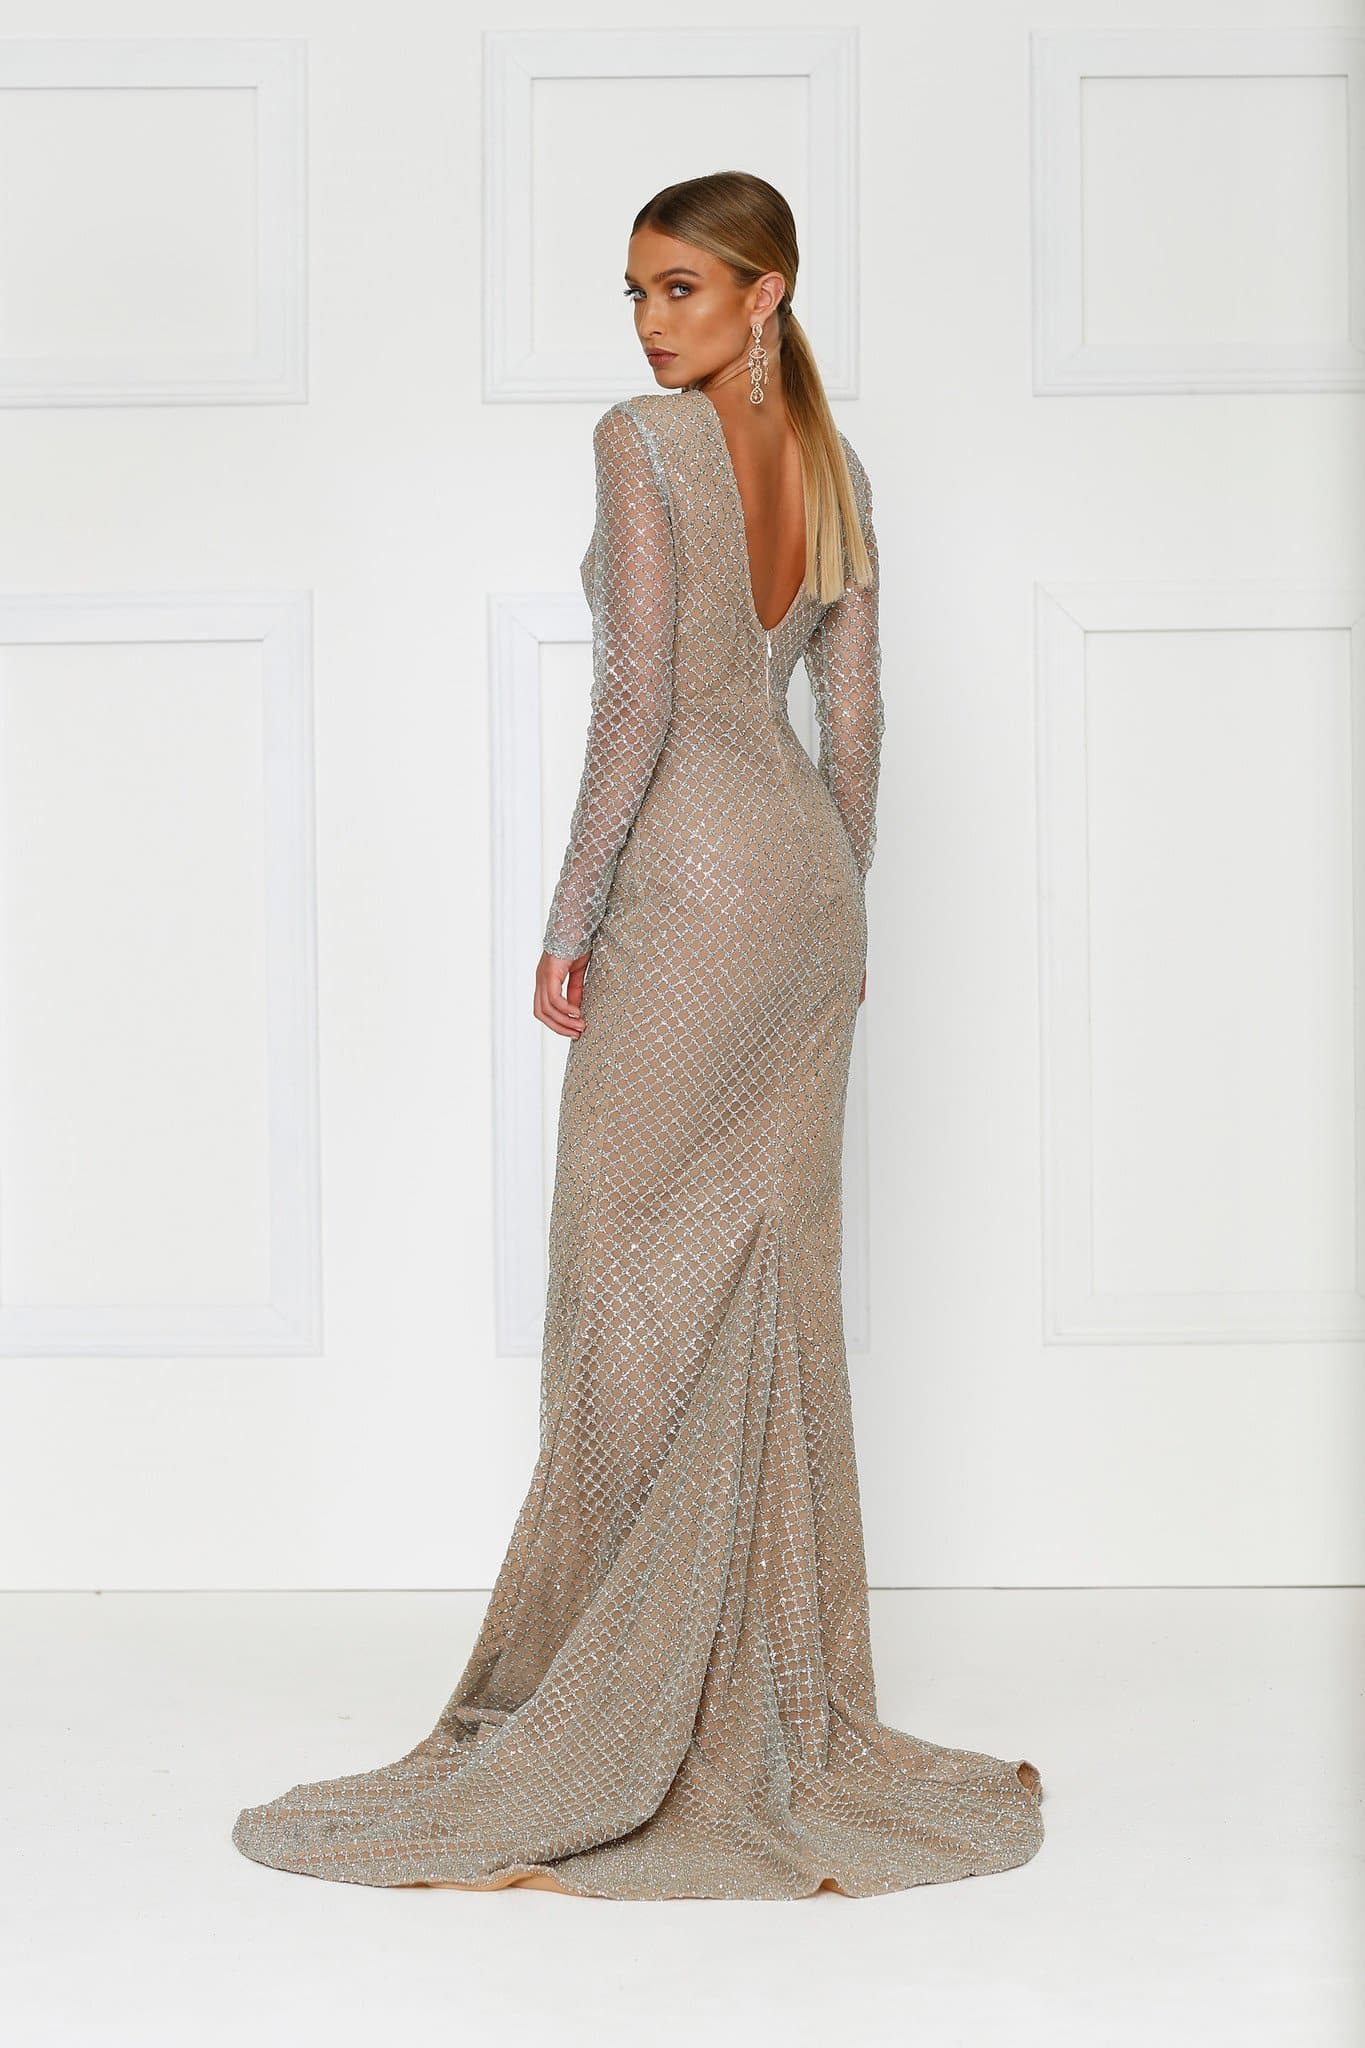 Giselle - Silver Glitter Gown with Long Sleeves & Low Back